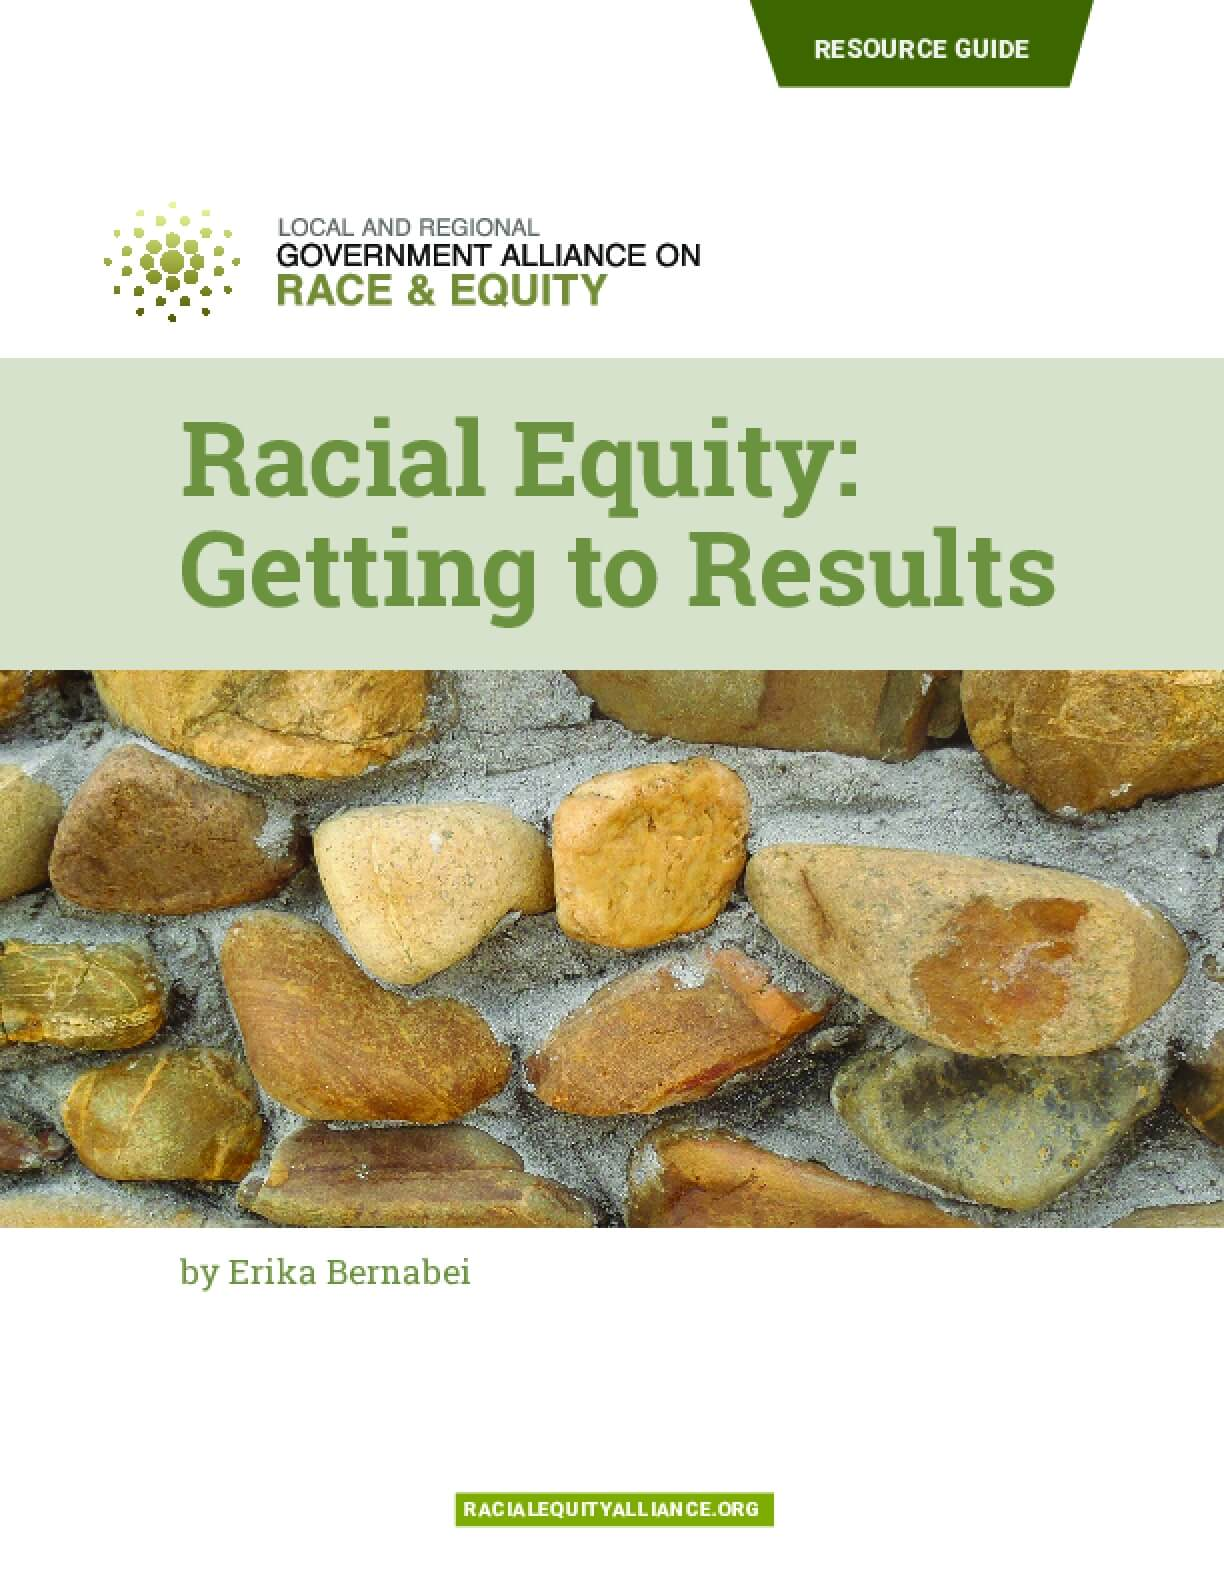 Racial Equity: Getting to Results